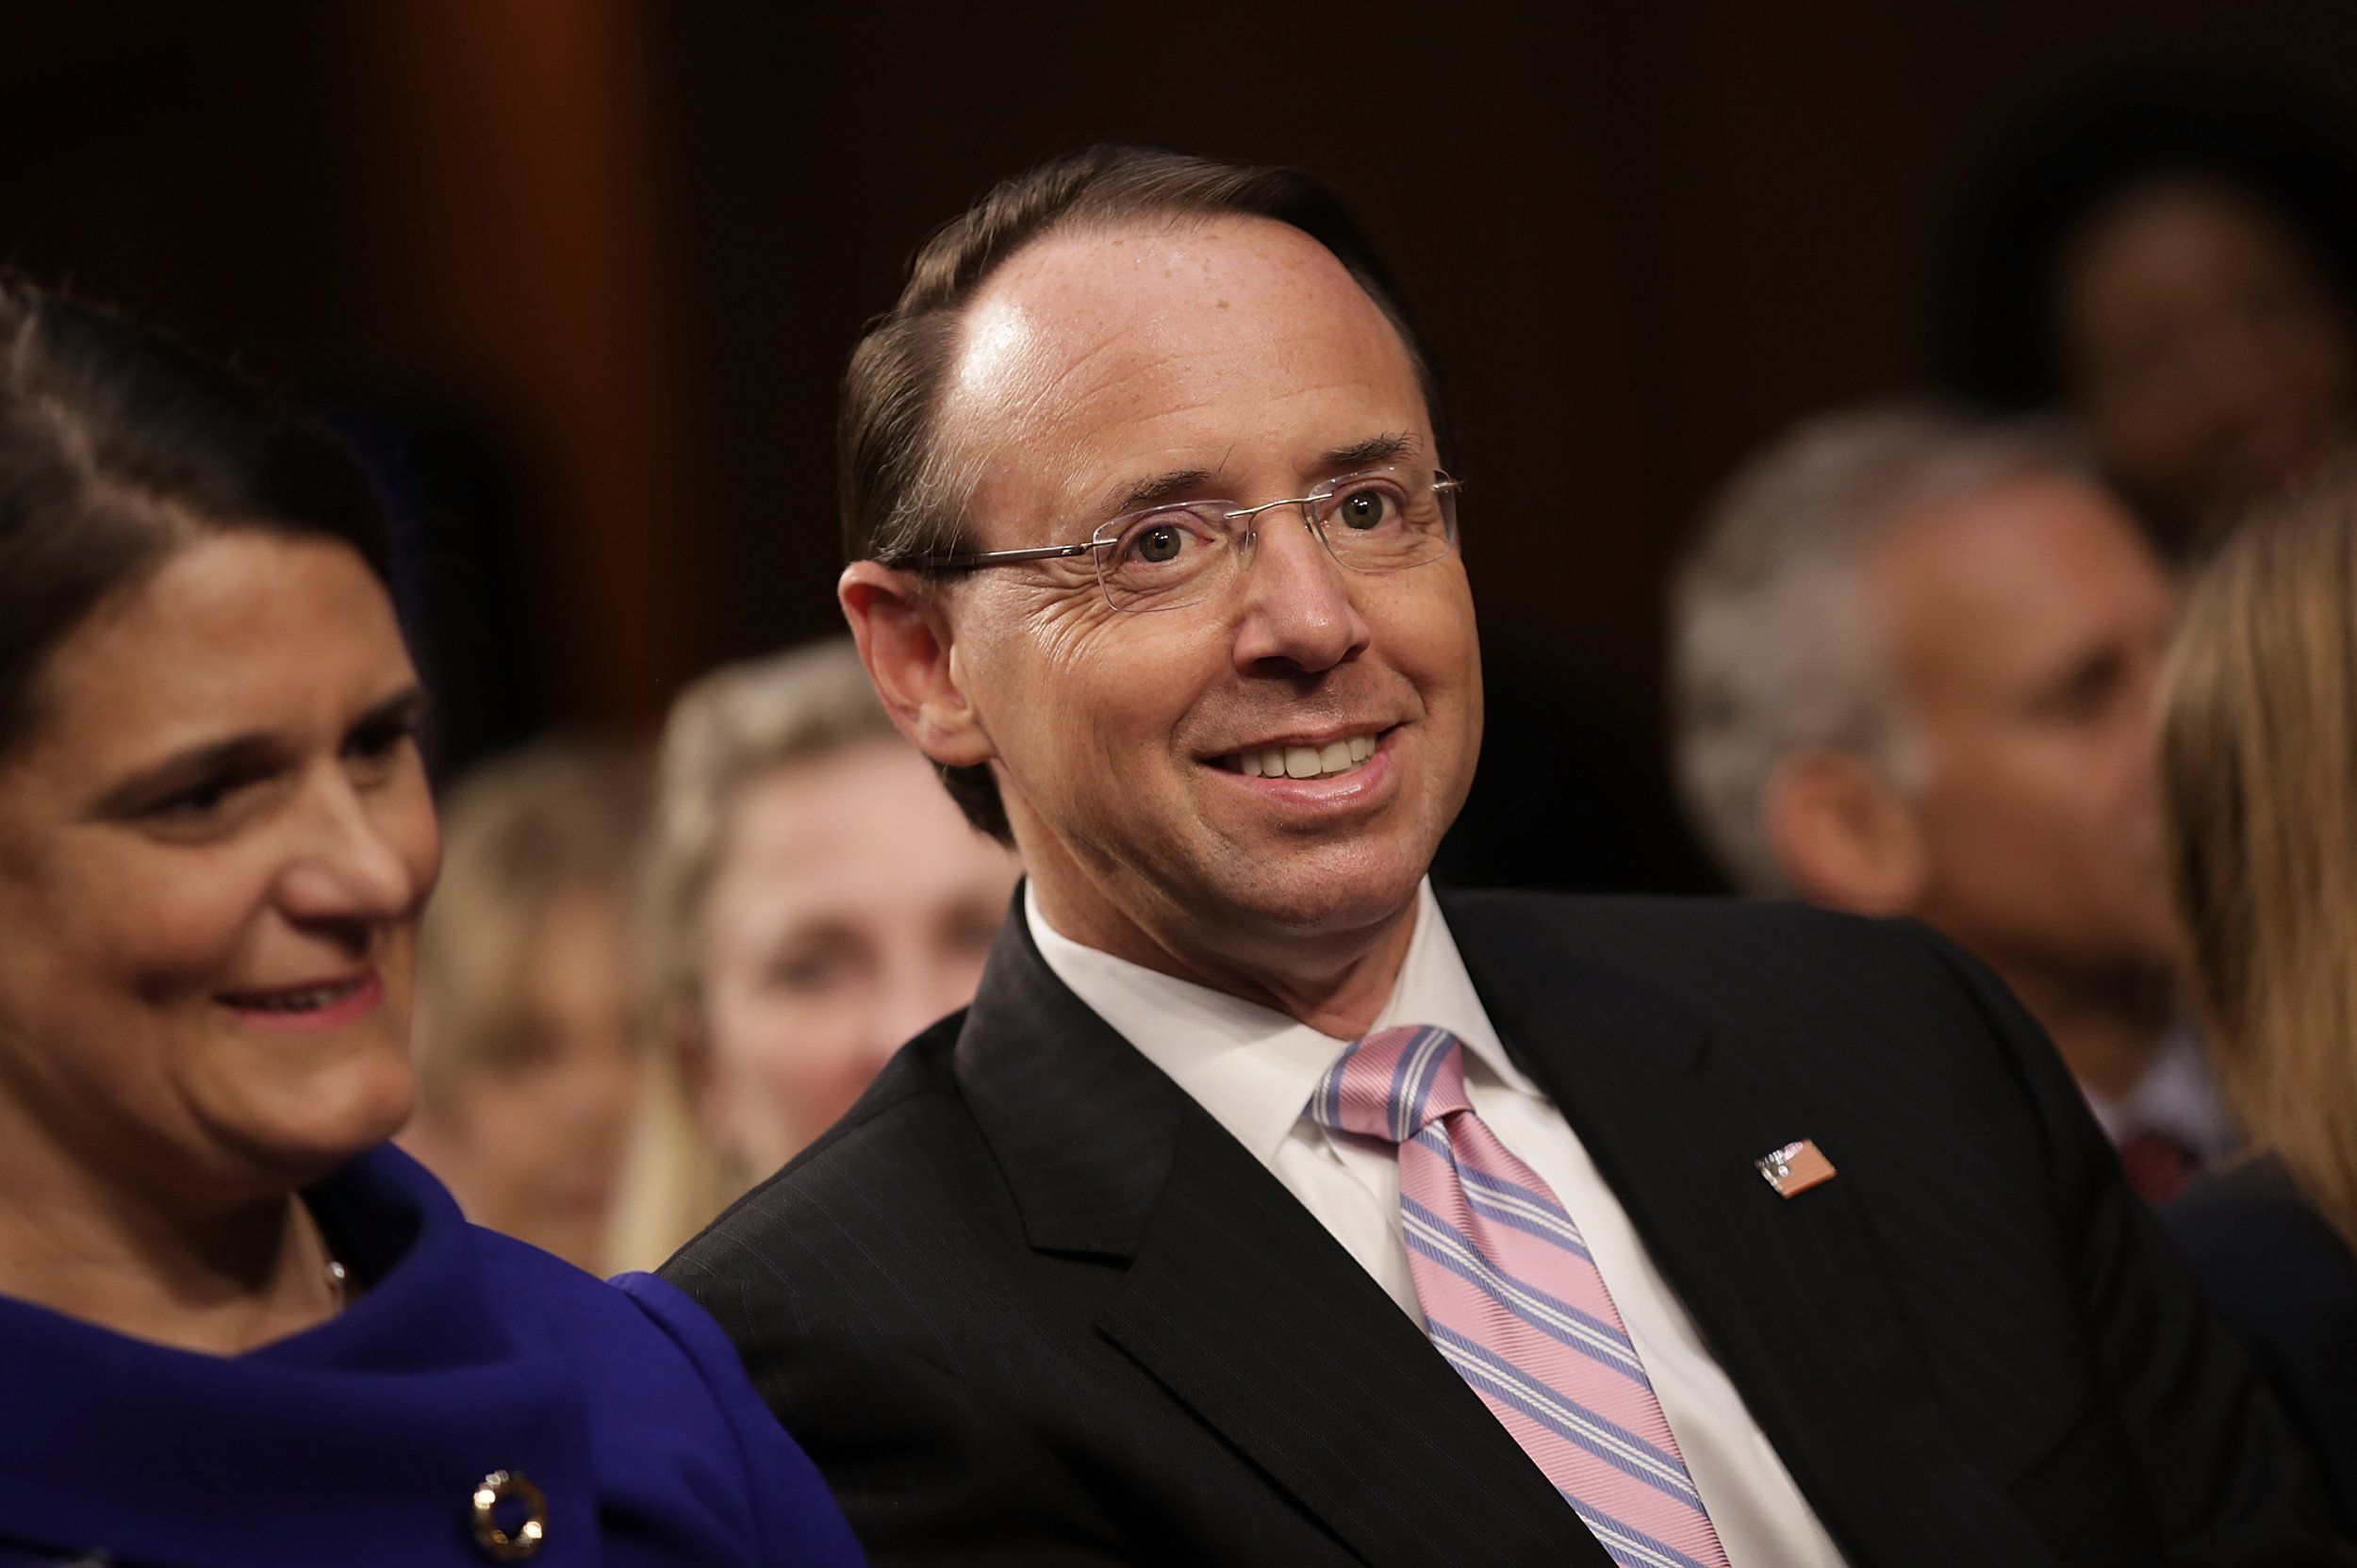 trump fire rosenstein mueller next 25th amendment